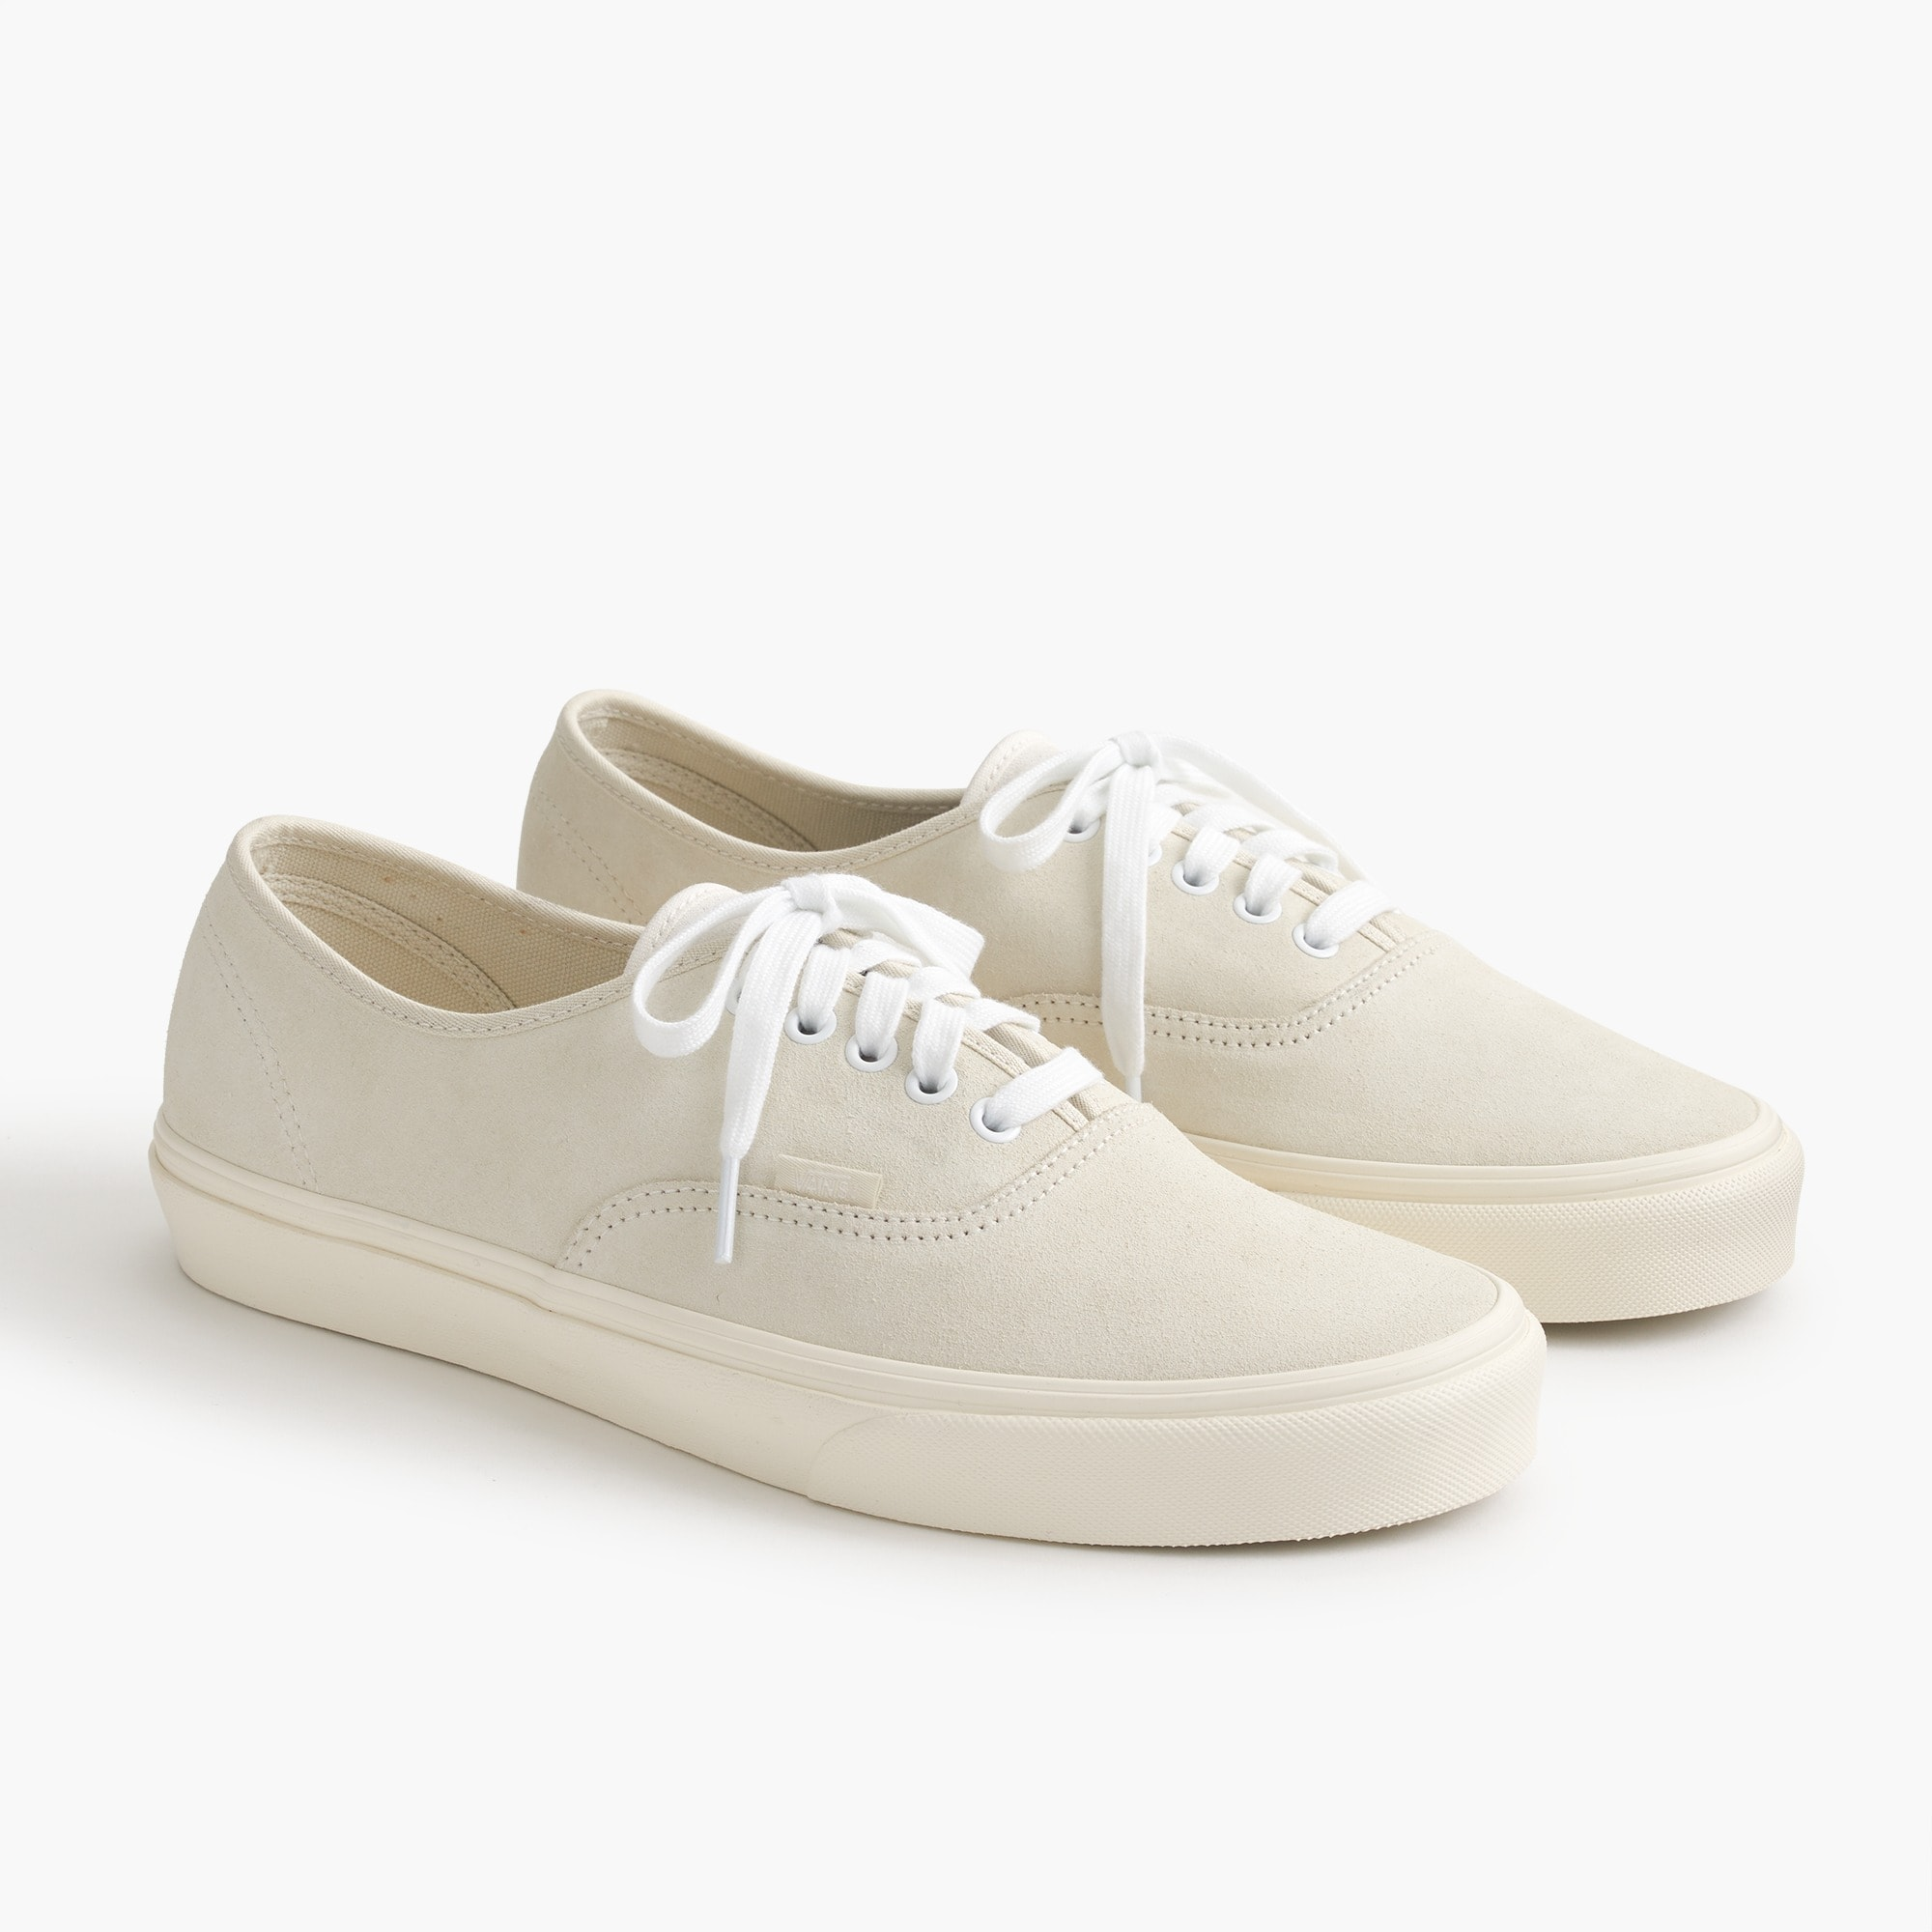 Men s Vans     For J Crew Suede Authentic Sneakers   Men s Sneakers   J     men s vans reg  for j crew suede authentic sneakers   men s sneakers